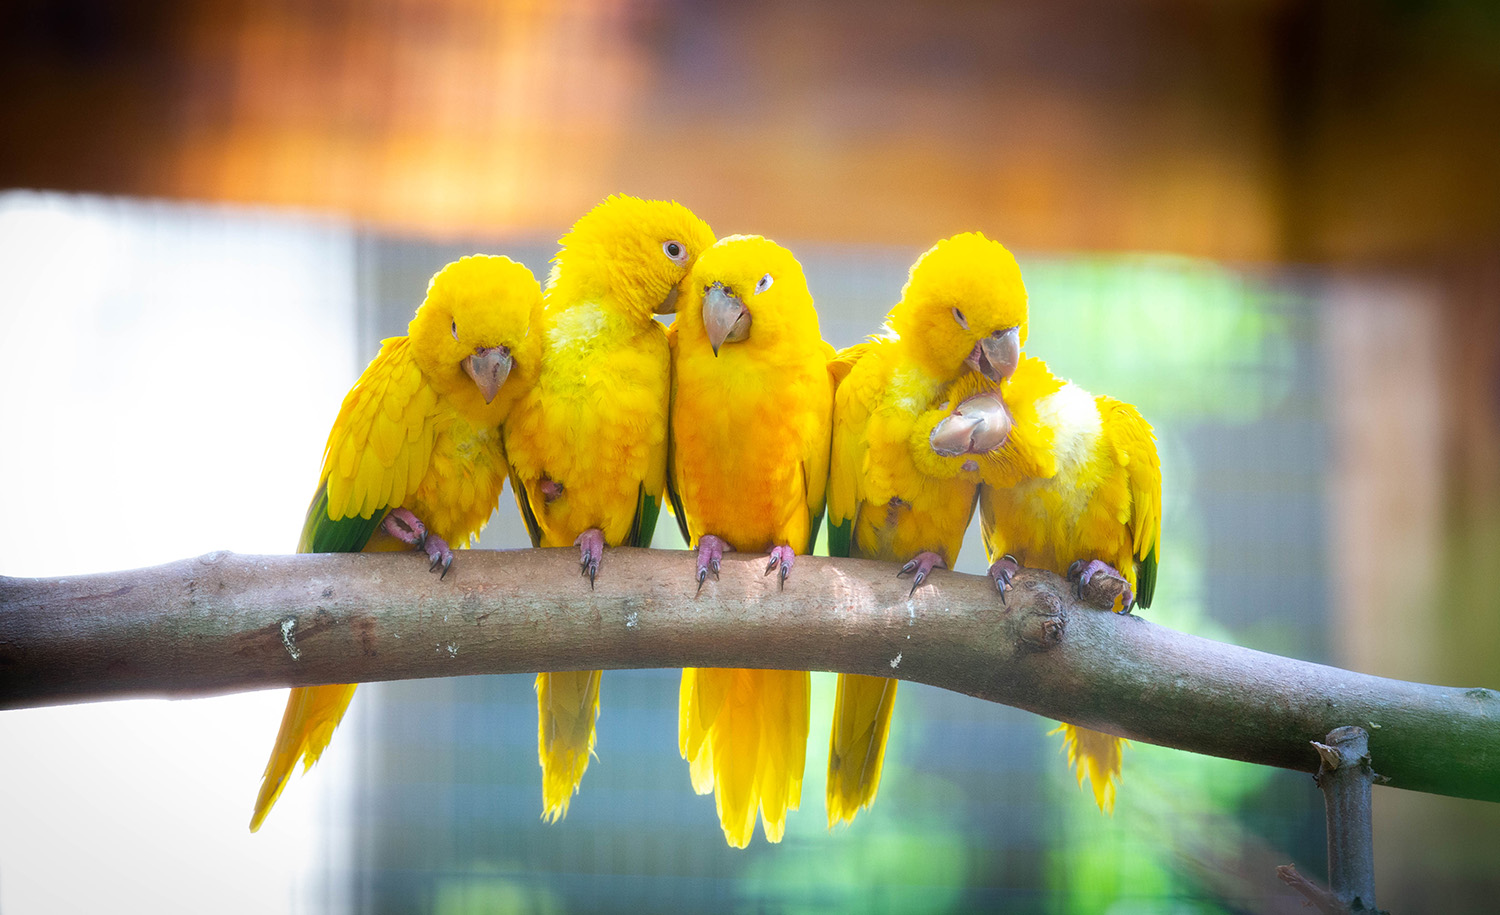 Golden conures parrots sit on a branch in their new enclosure at the Santa Fe College Teaching Zoo on April 28, 2020 in Gainesville, Fla.  (Matt Stamey/Santa Fe College )